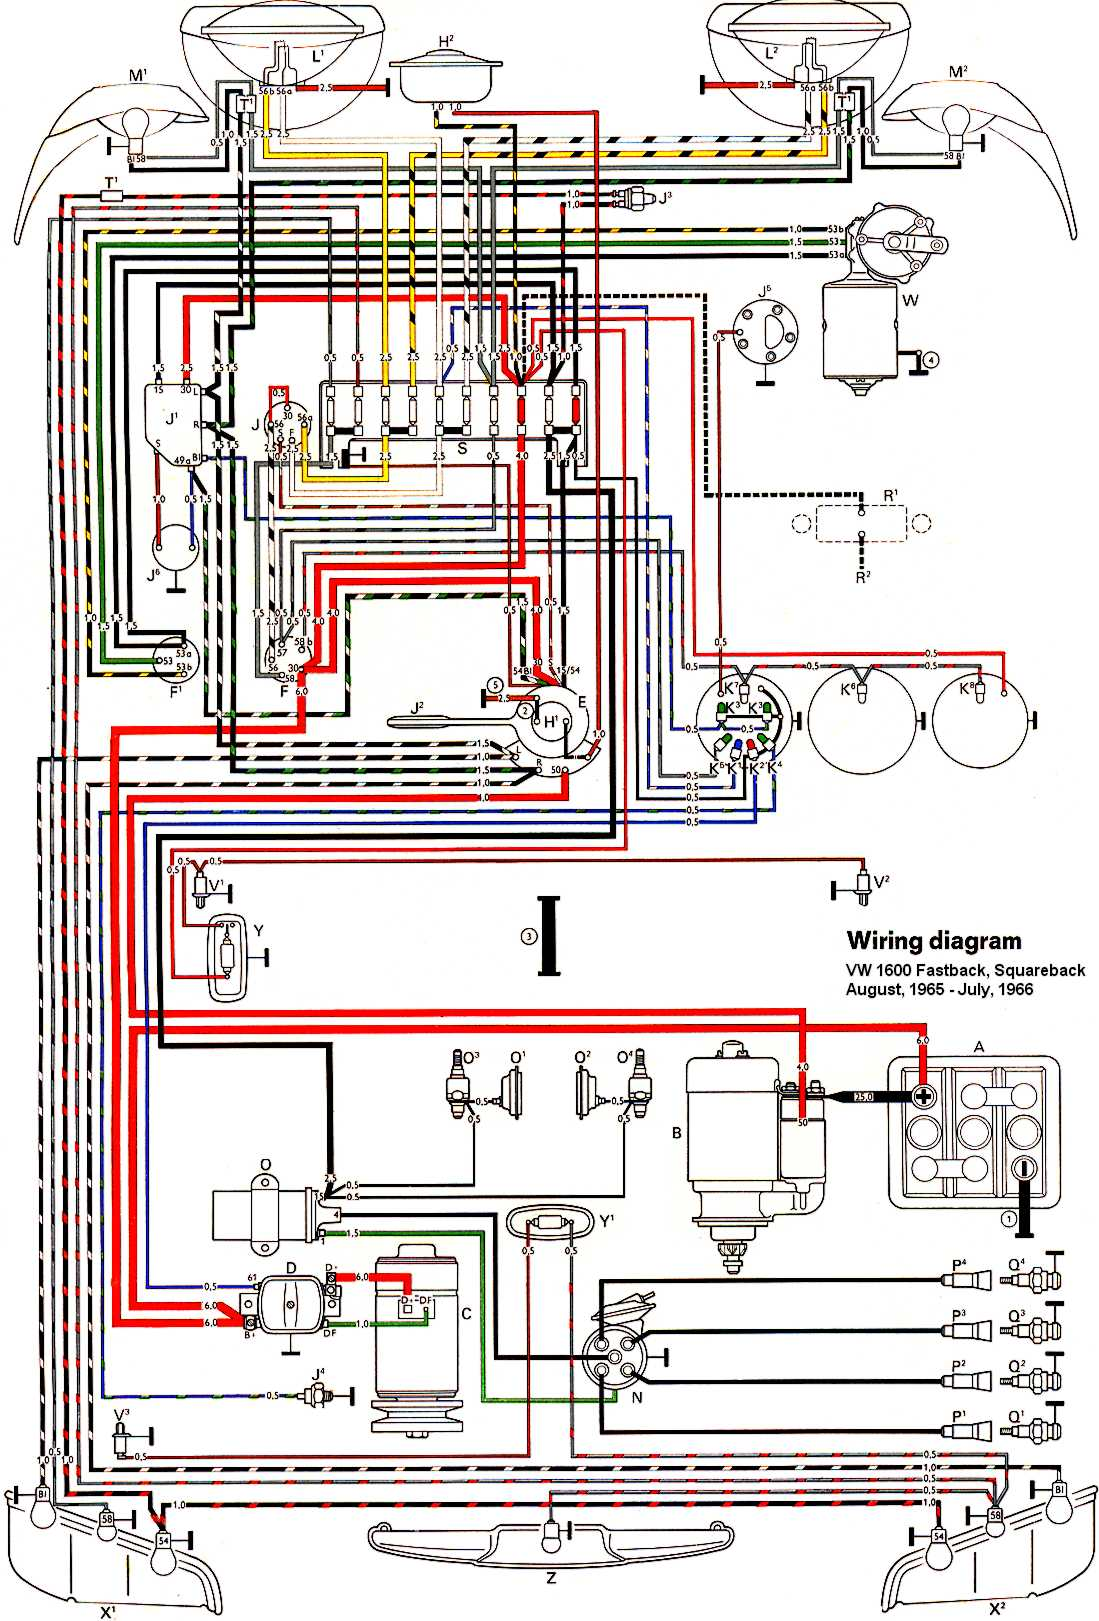 8acb139 69 vw wiring diagram | wiring resources  wiring resources